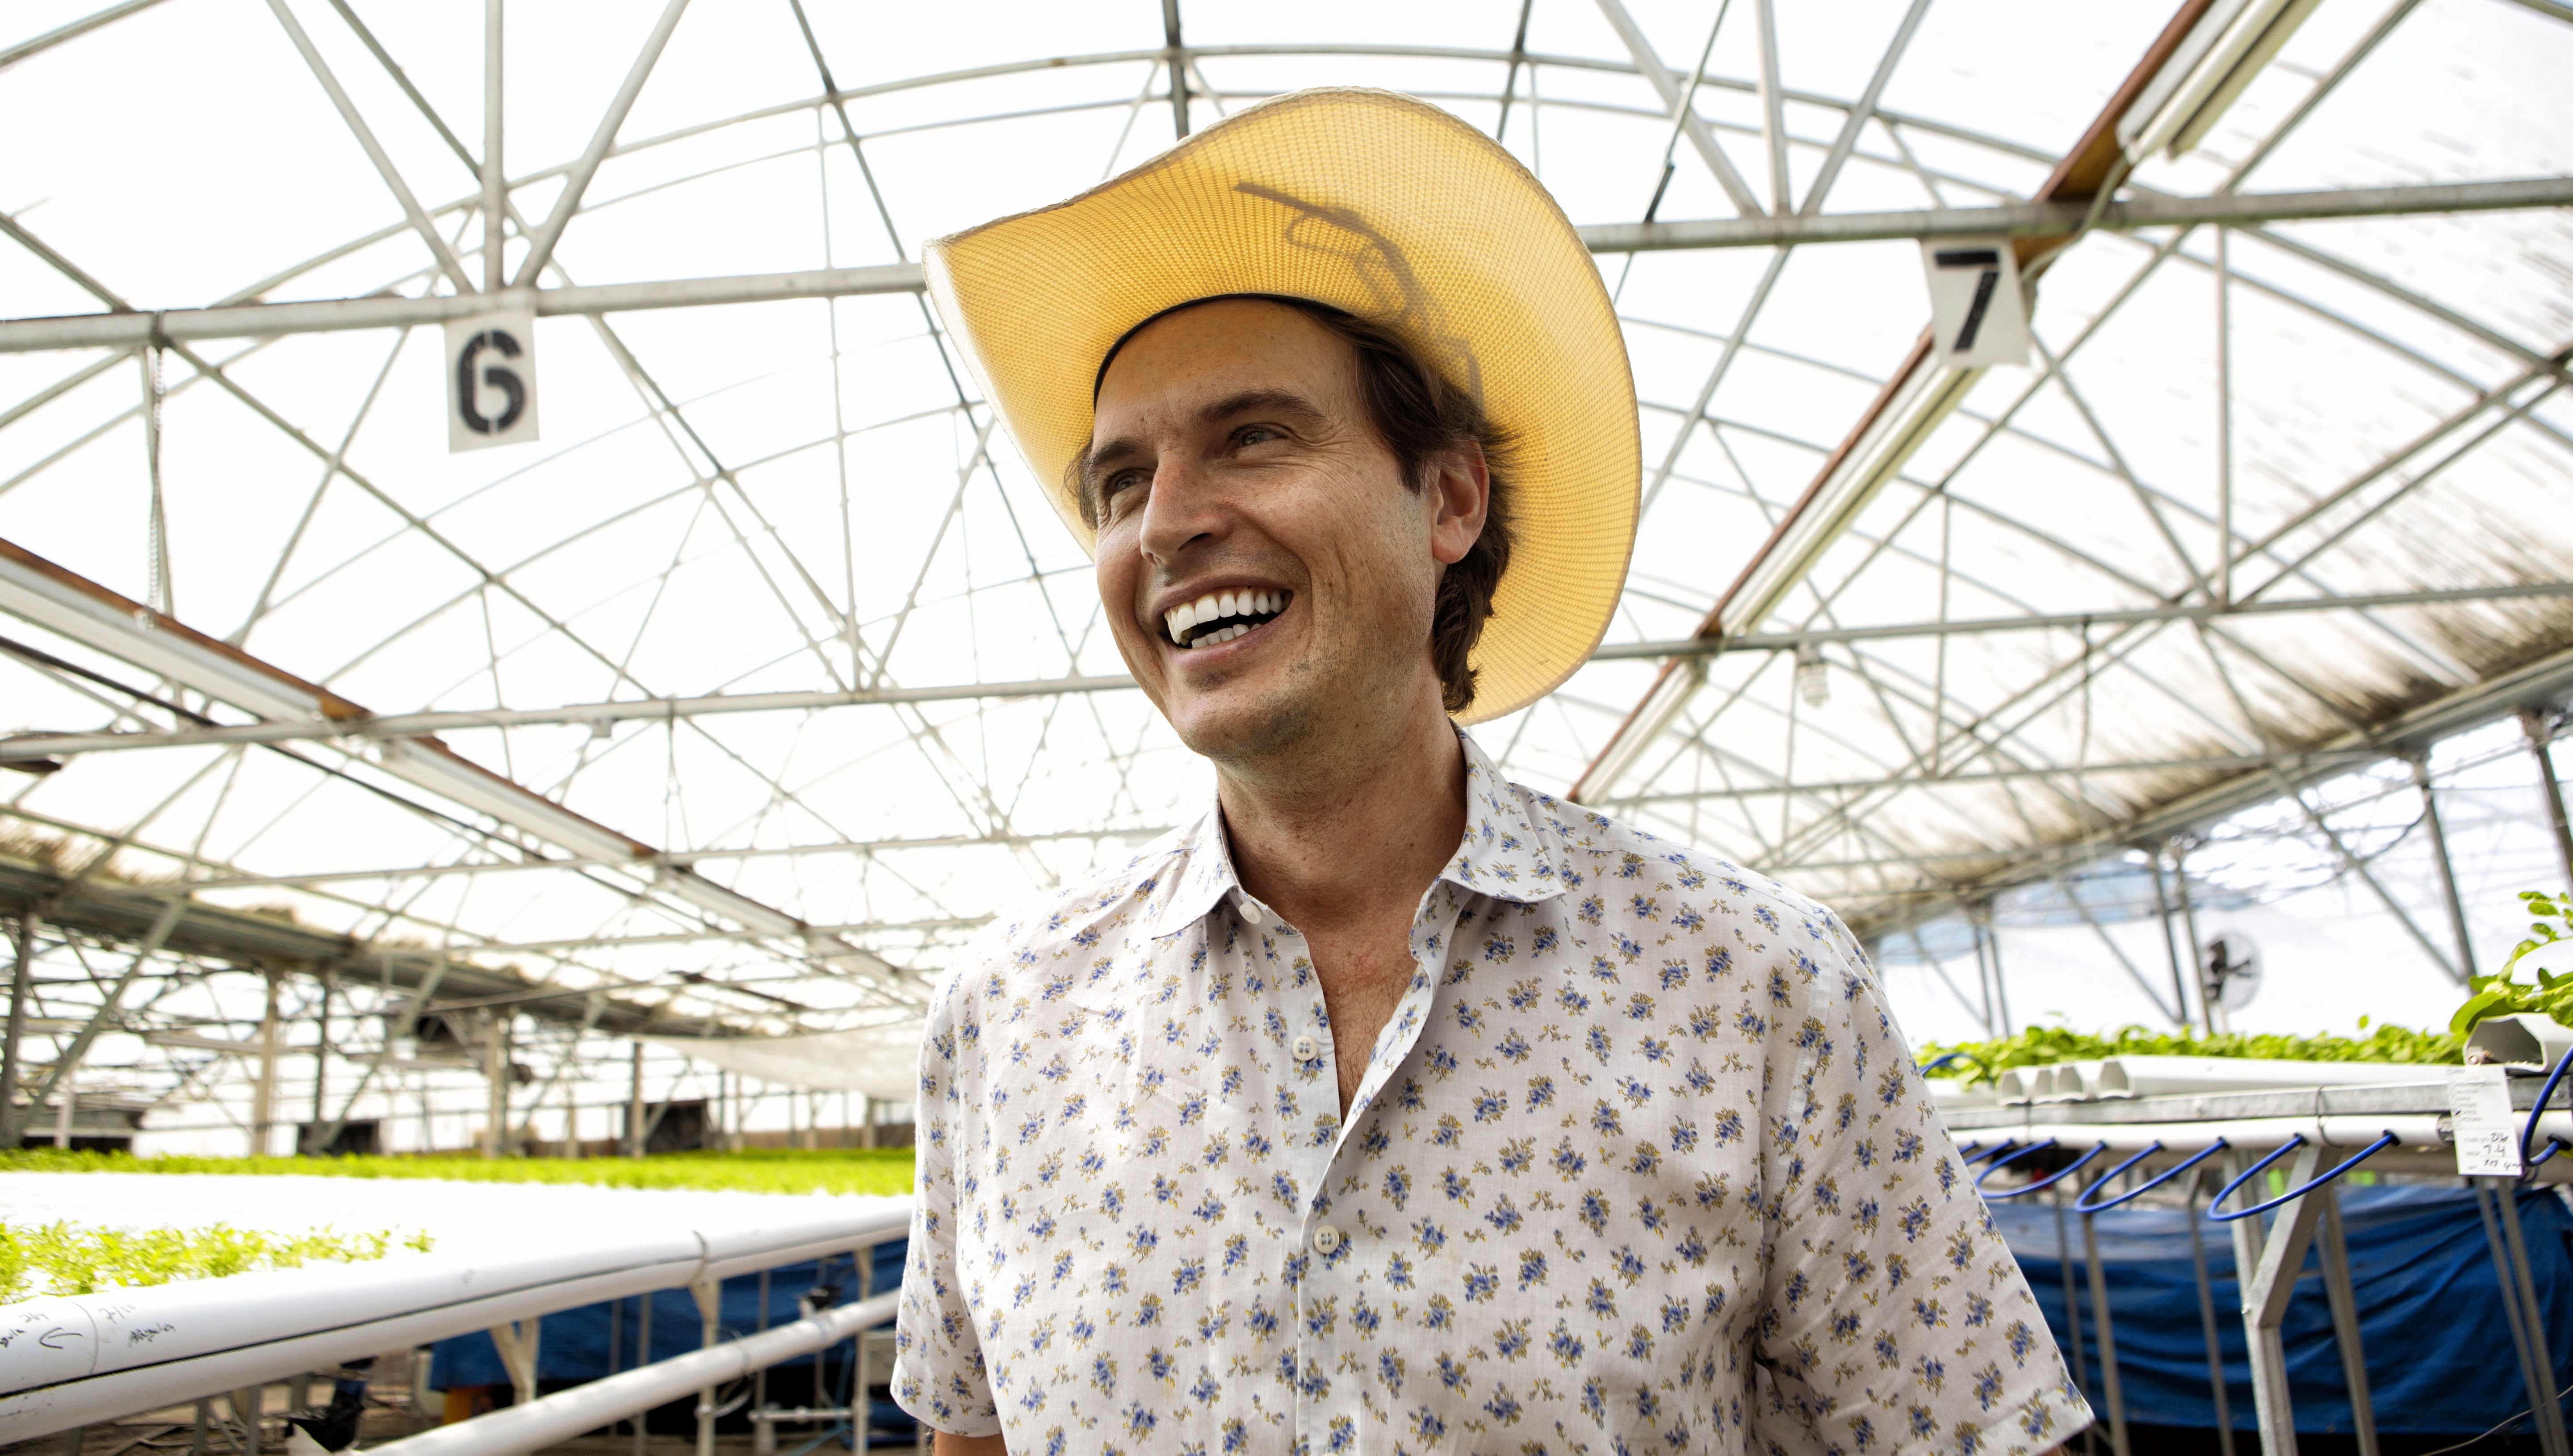 Kimbal Musk Is Reinventing Food One Shipping Container at a Time